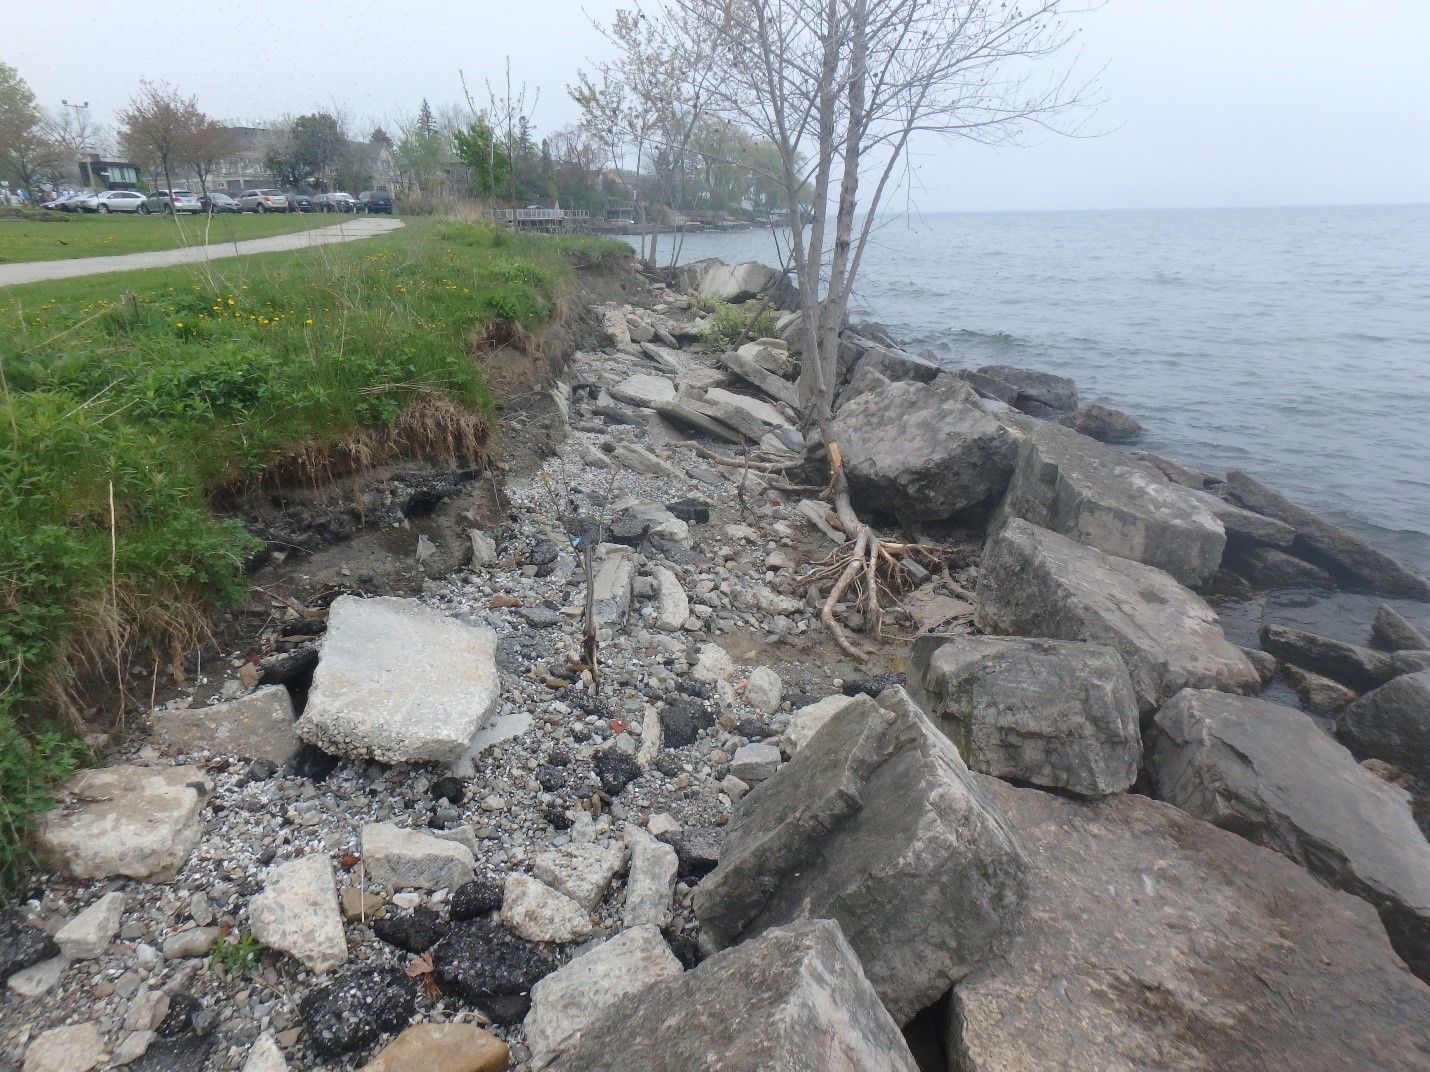 Scouring behind length of structure, putting park trail at-risk from erosion. Source: TRCA, 2018.